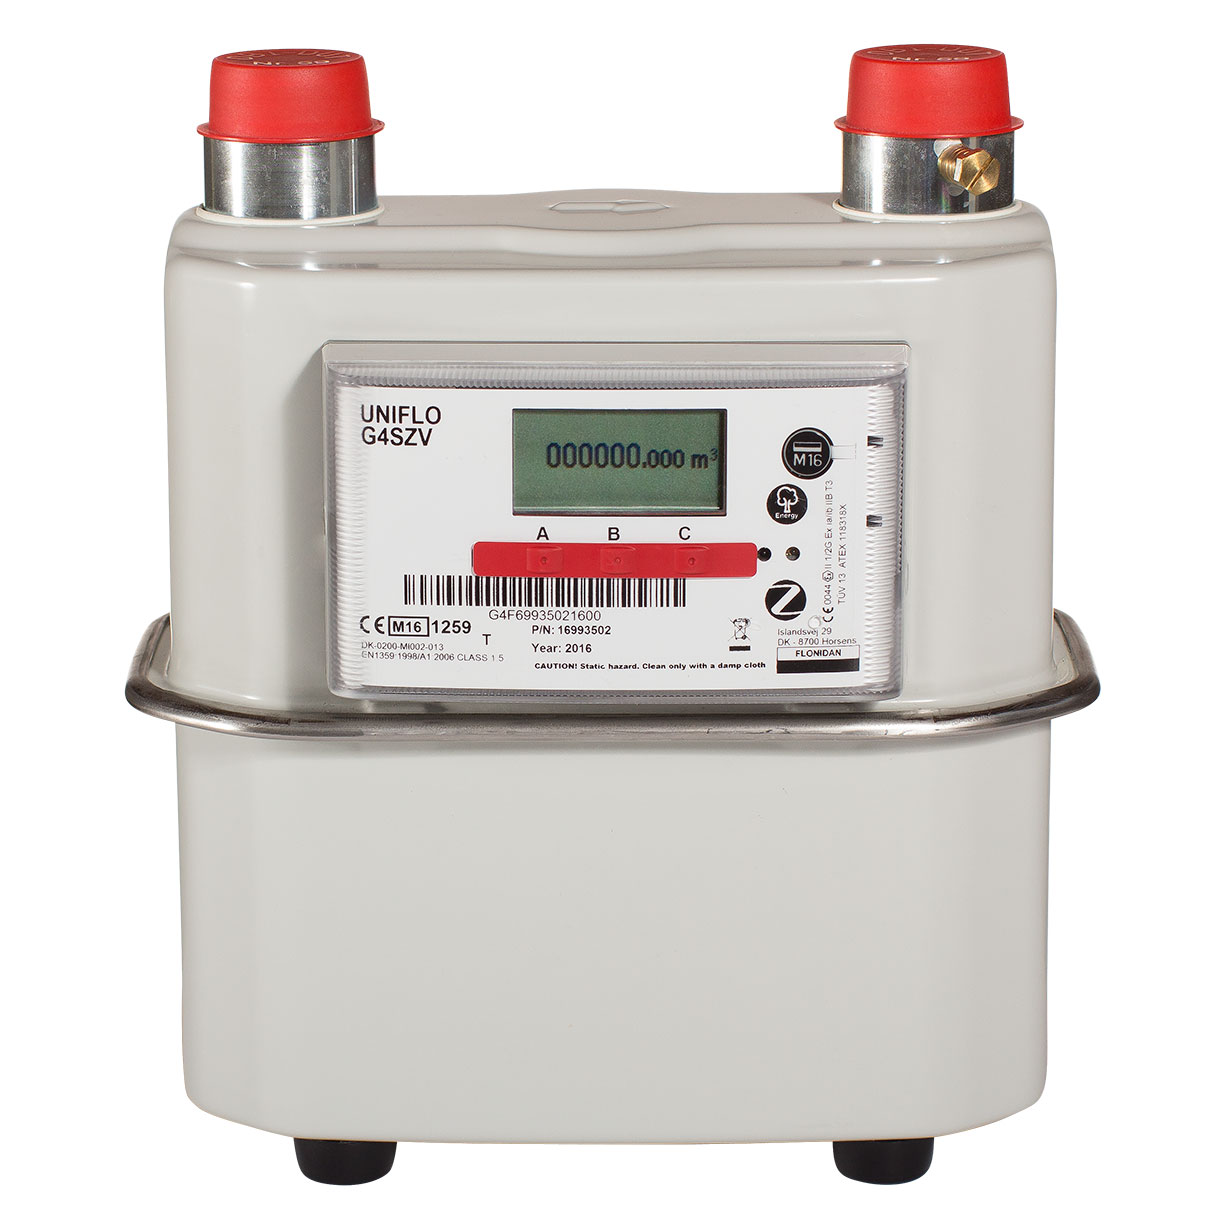 The Flonidan Gas Smart Meter